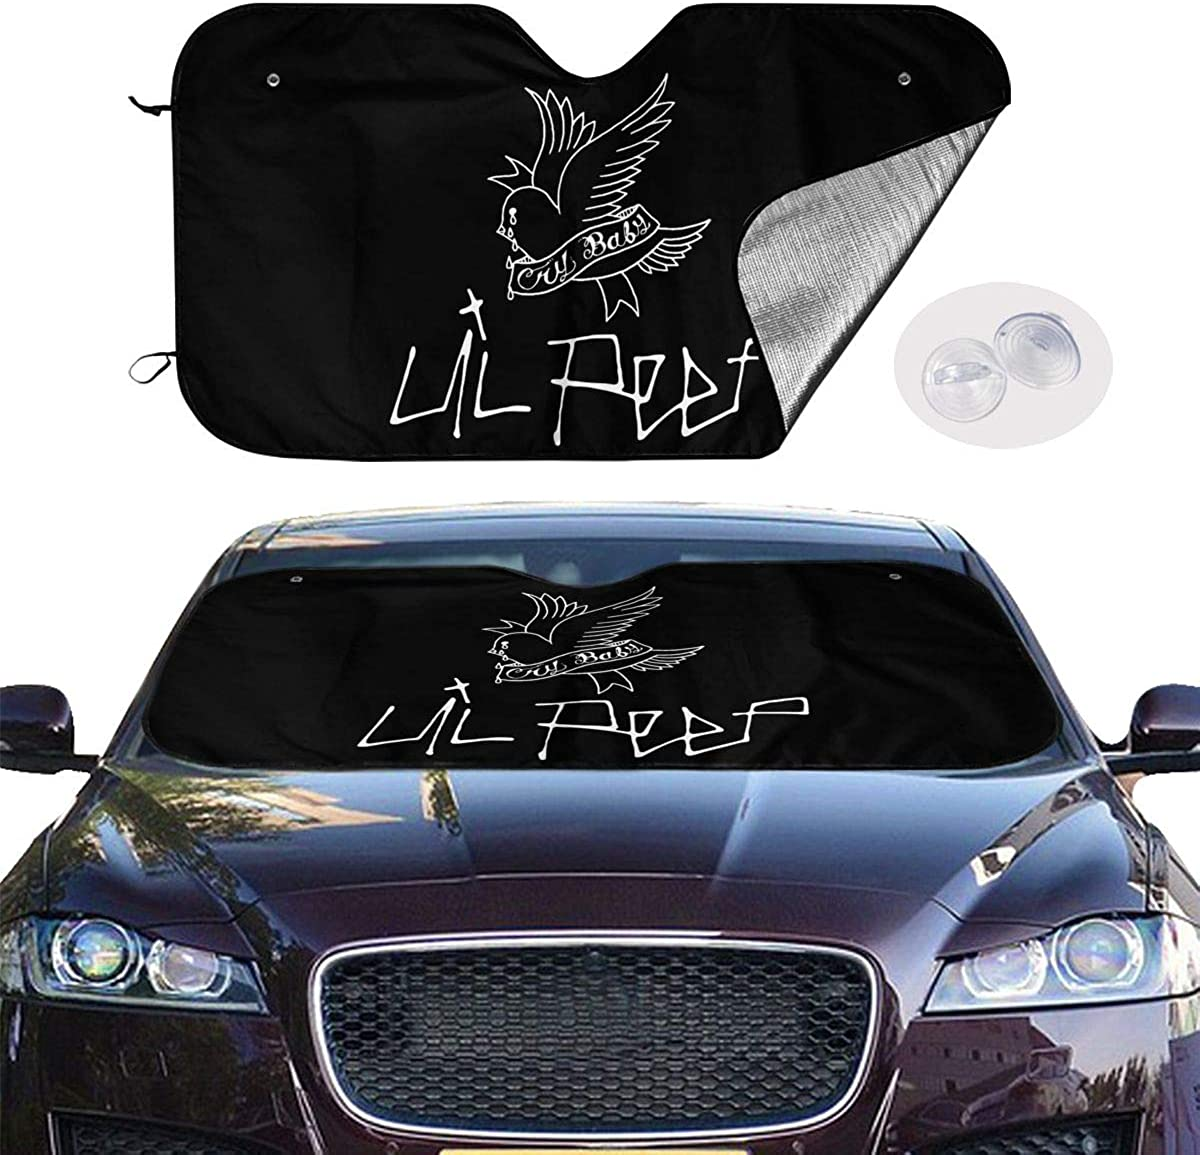 N//C Peep Lil Car Windshield Fit Car Sunshade for All Vehicles and Keep Your Vehicle Coold Keep Your Vehicle Cool